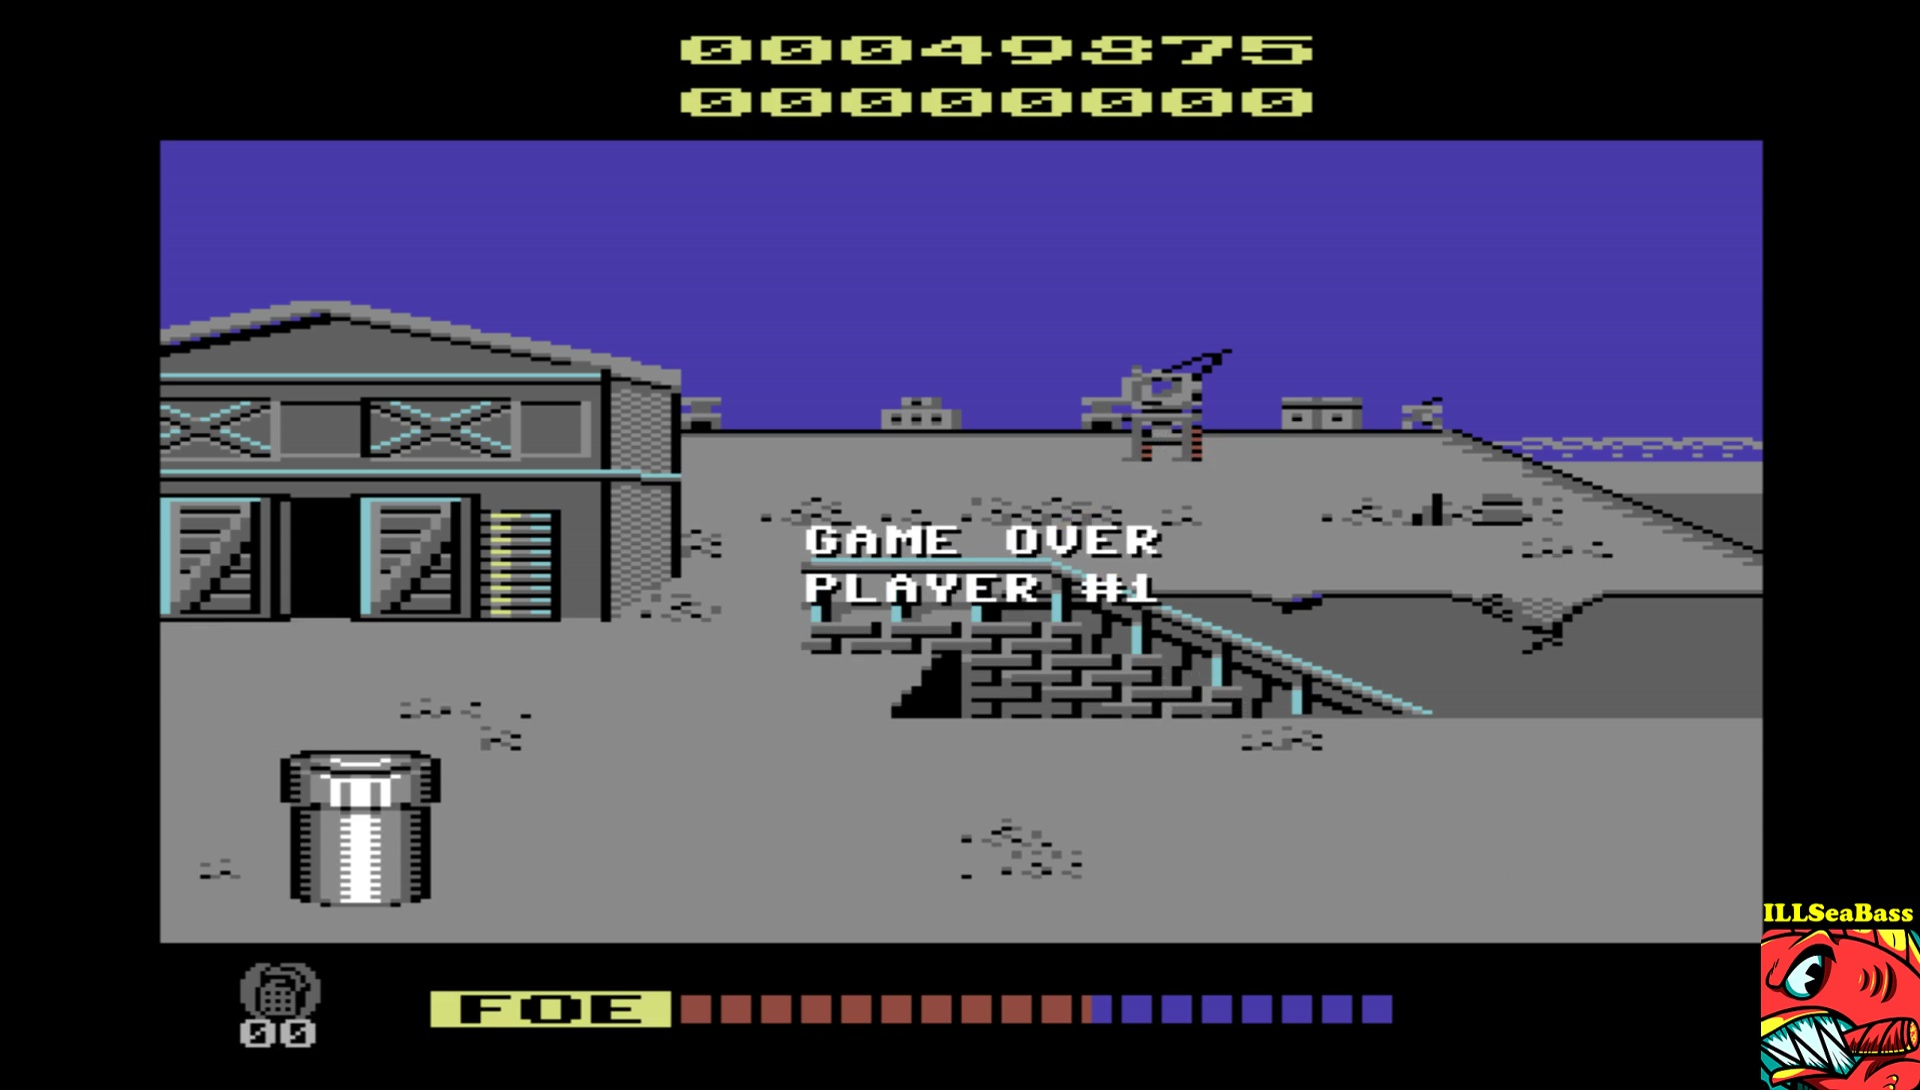 ILLSeaBass: Cabal (Commodore 64 Emulated) 49,875 points on 2017-04-07 12:05:45